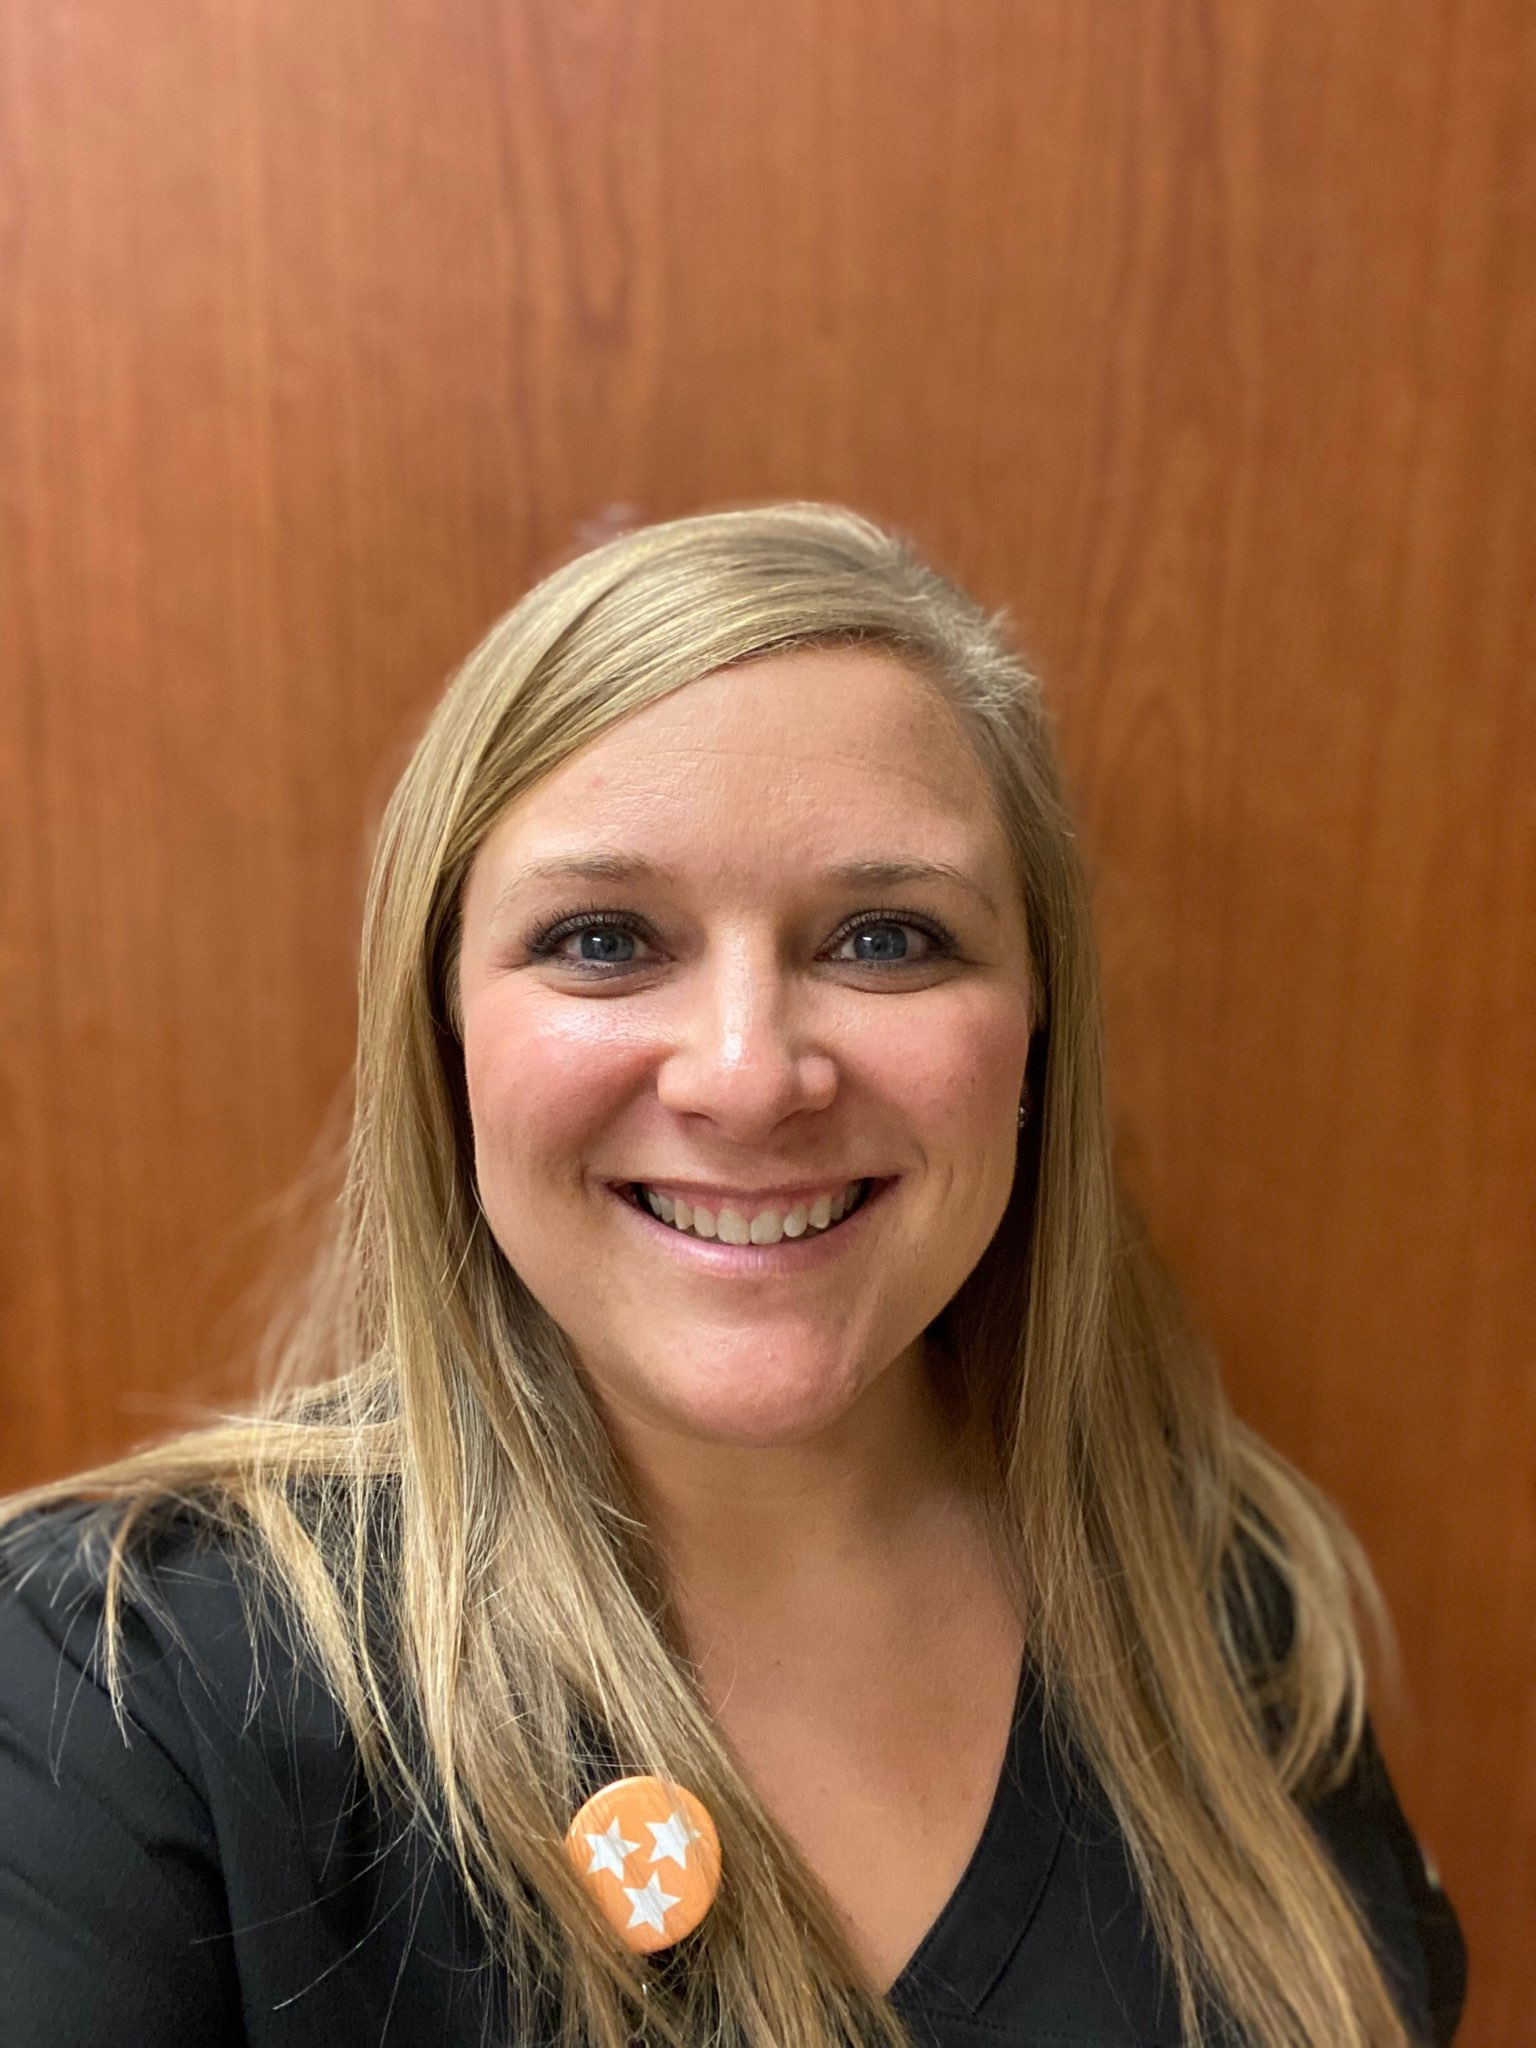 Feature Friday: Christy Oakes, RN